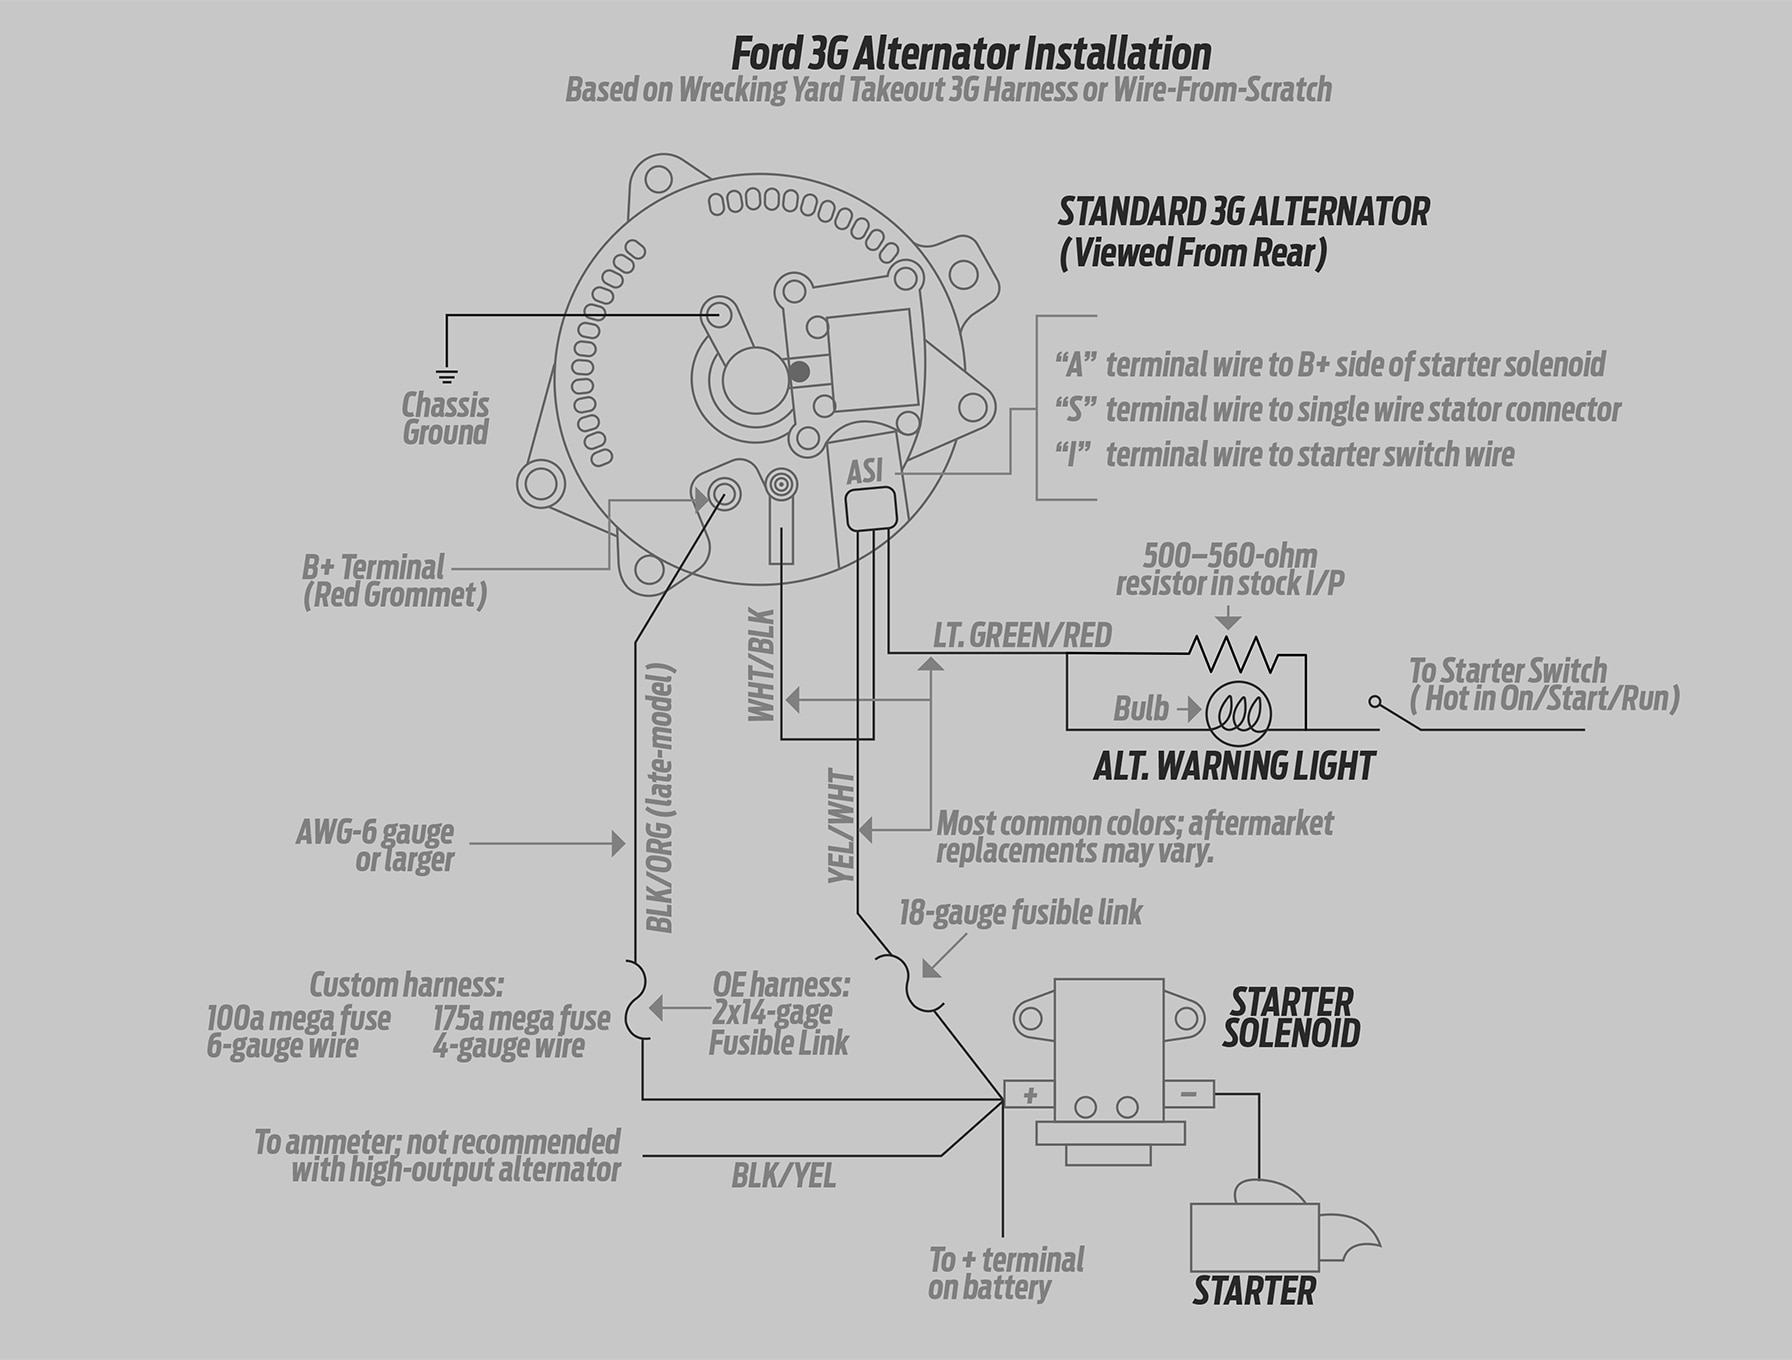 small resolution of how to install a high output ford 3g alternator into older fords late model ford 302 alternator wiring diagram